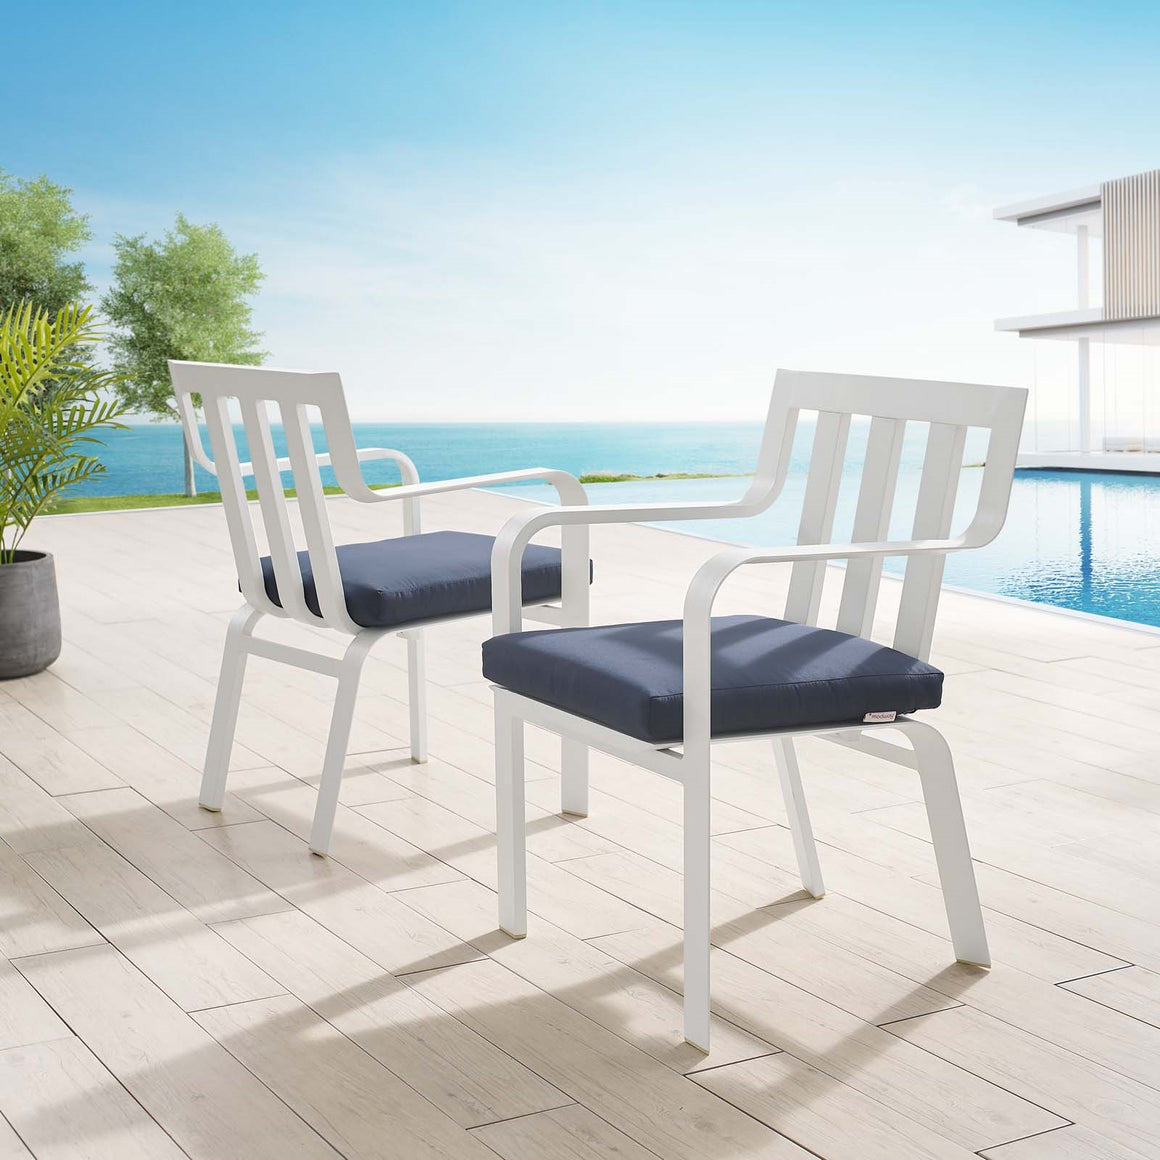 Baxley Outdoor Patio Armchairs, Set of 2 - taylor ray decor